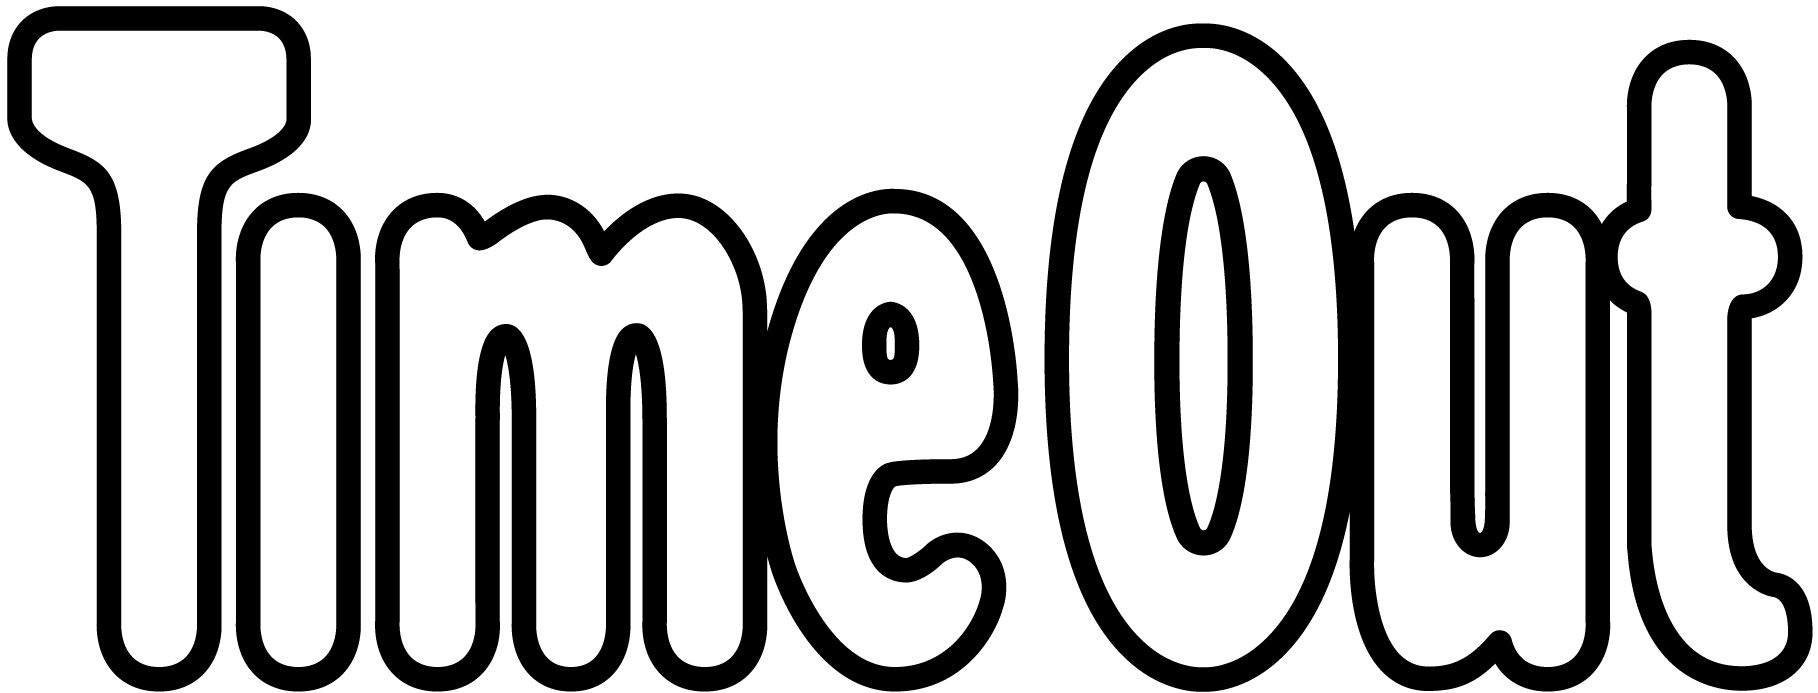 Time-Out-Logo-1-4801.png